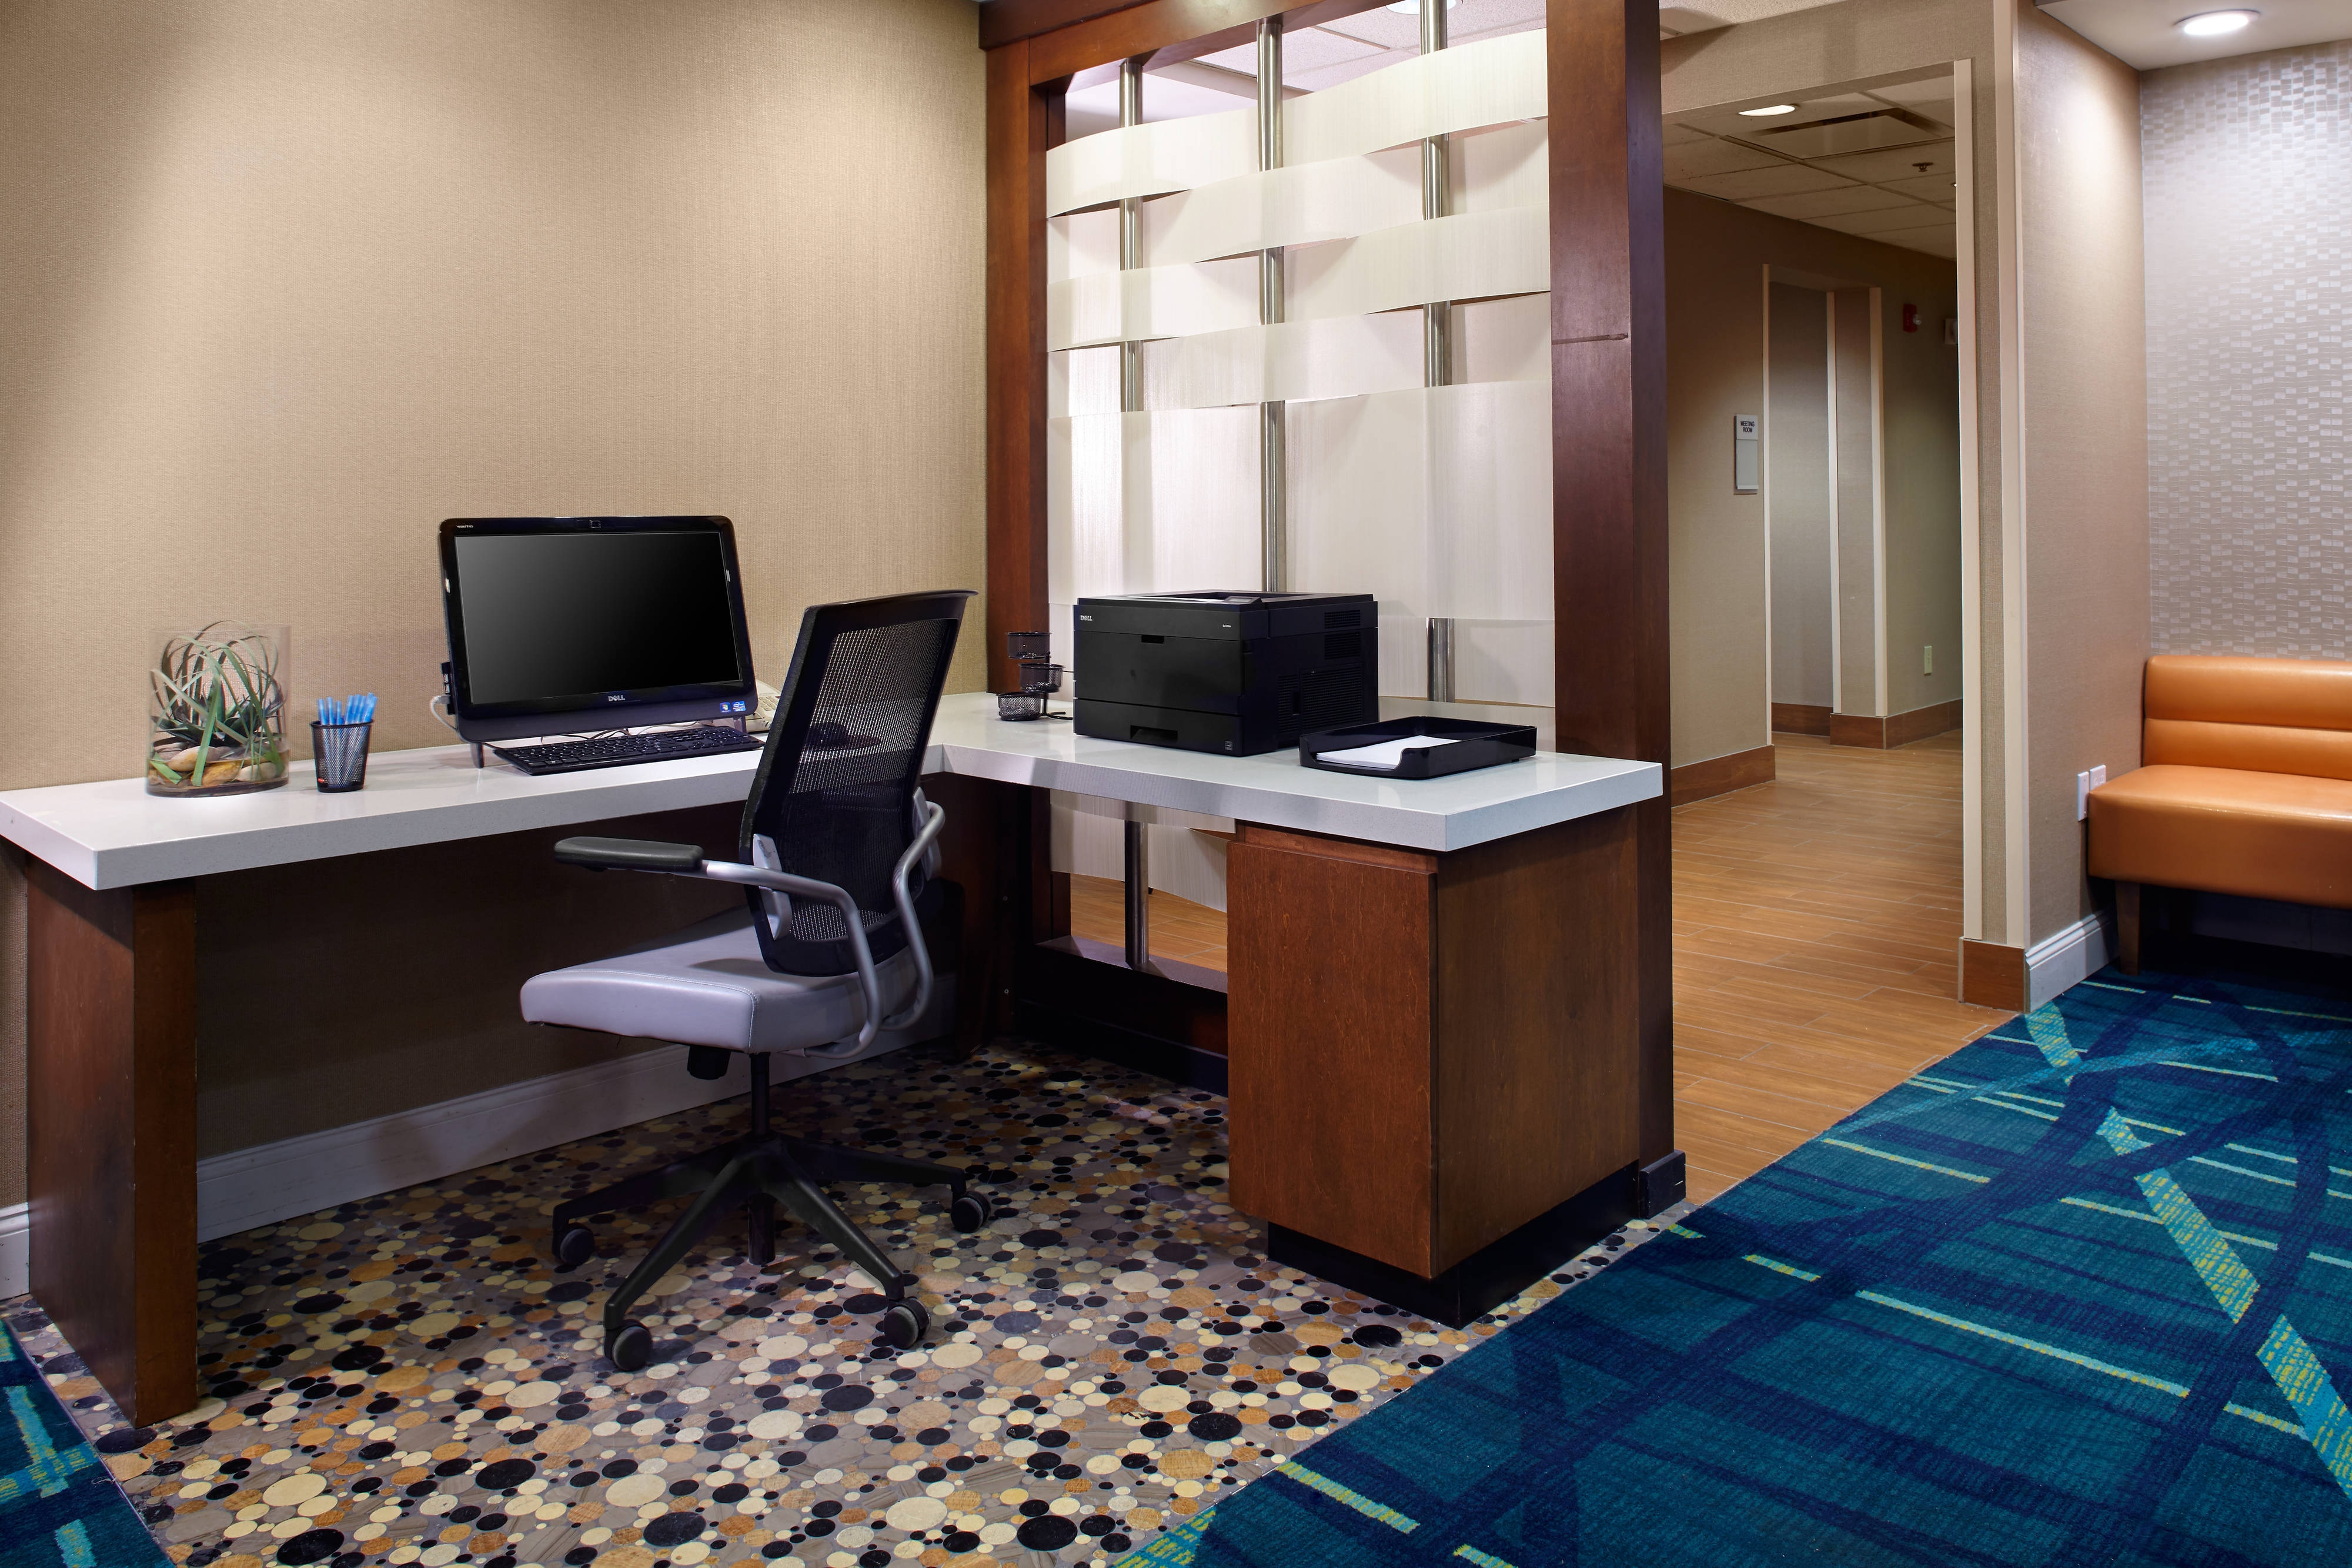 pittsburg airport hotel business center